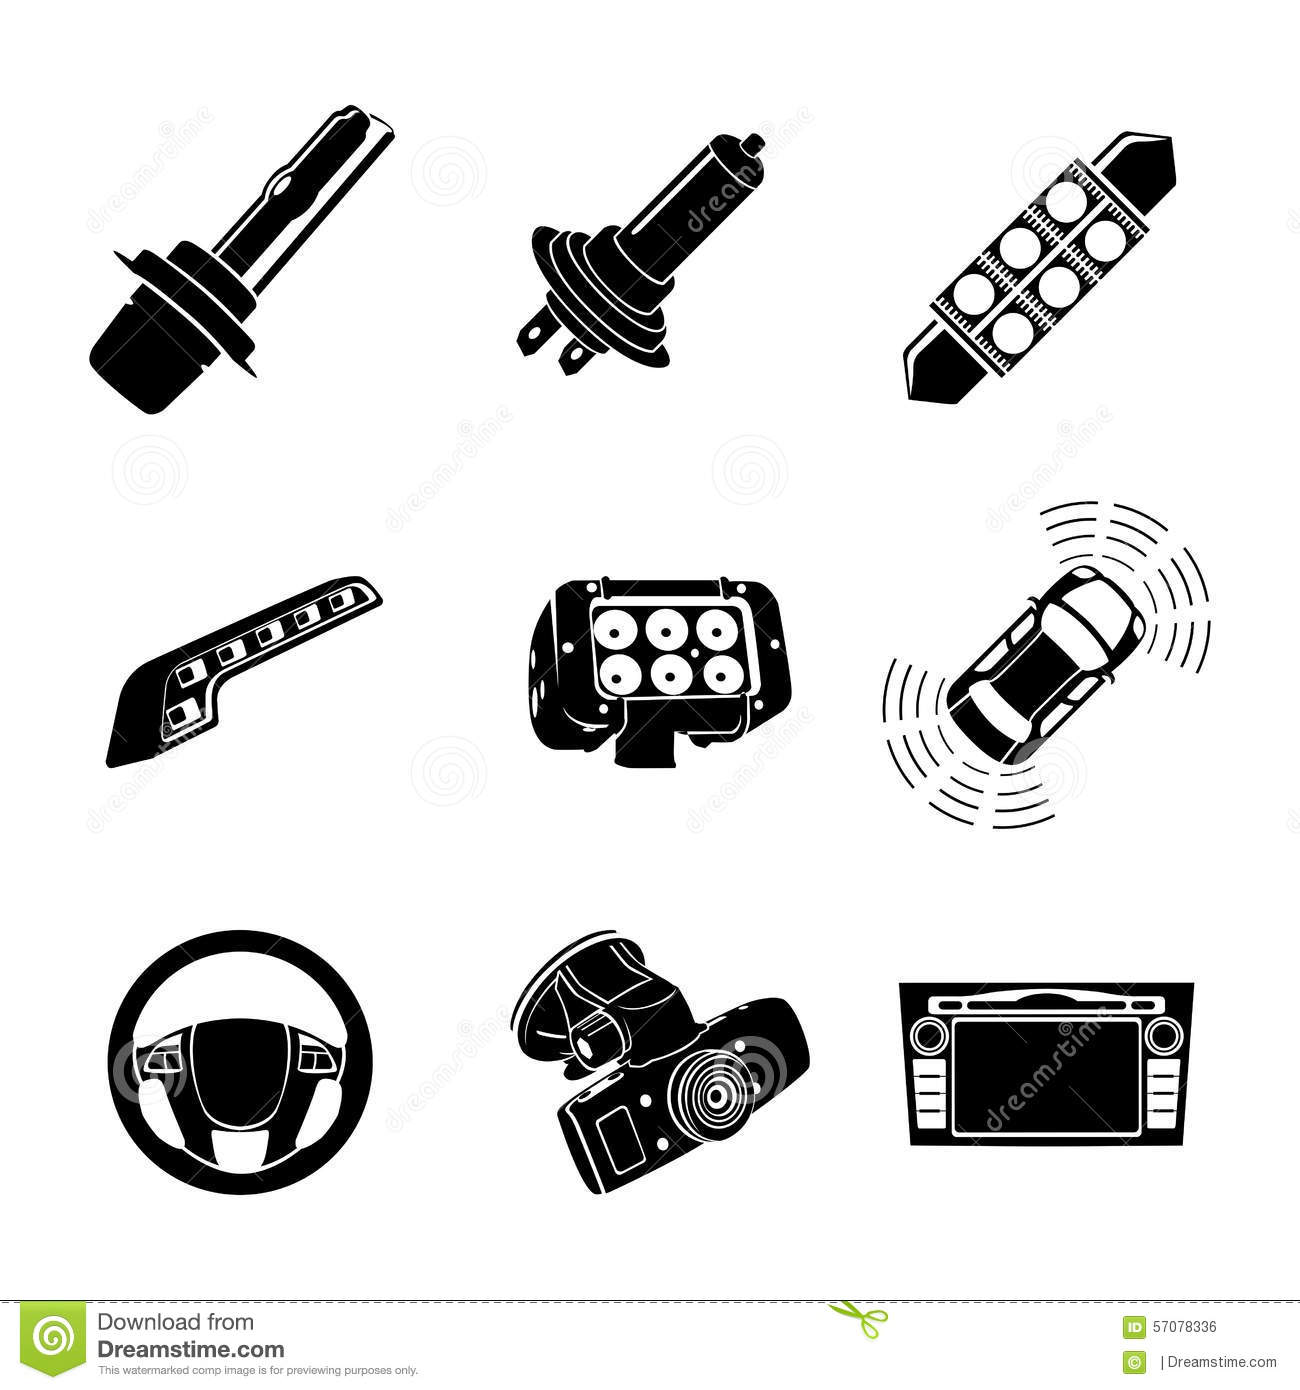 Xenon-LED Lamps And Car Multimedia Icon Set Stock Illustration ... for Car Lamp Vector  35fsj